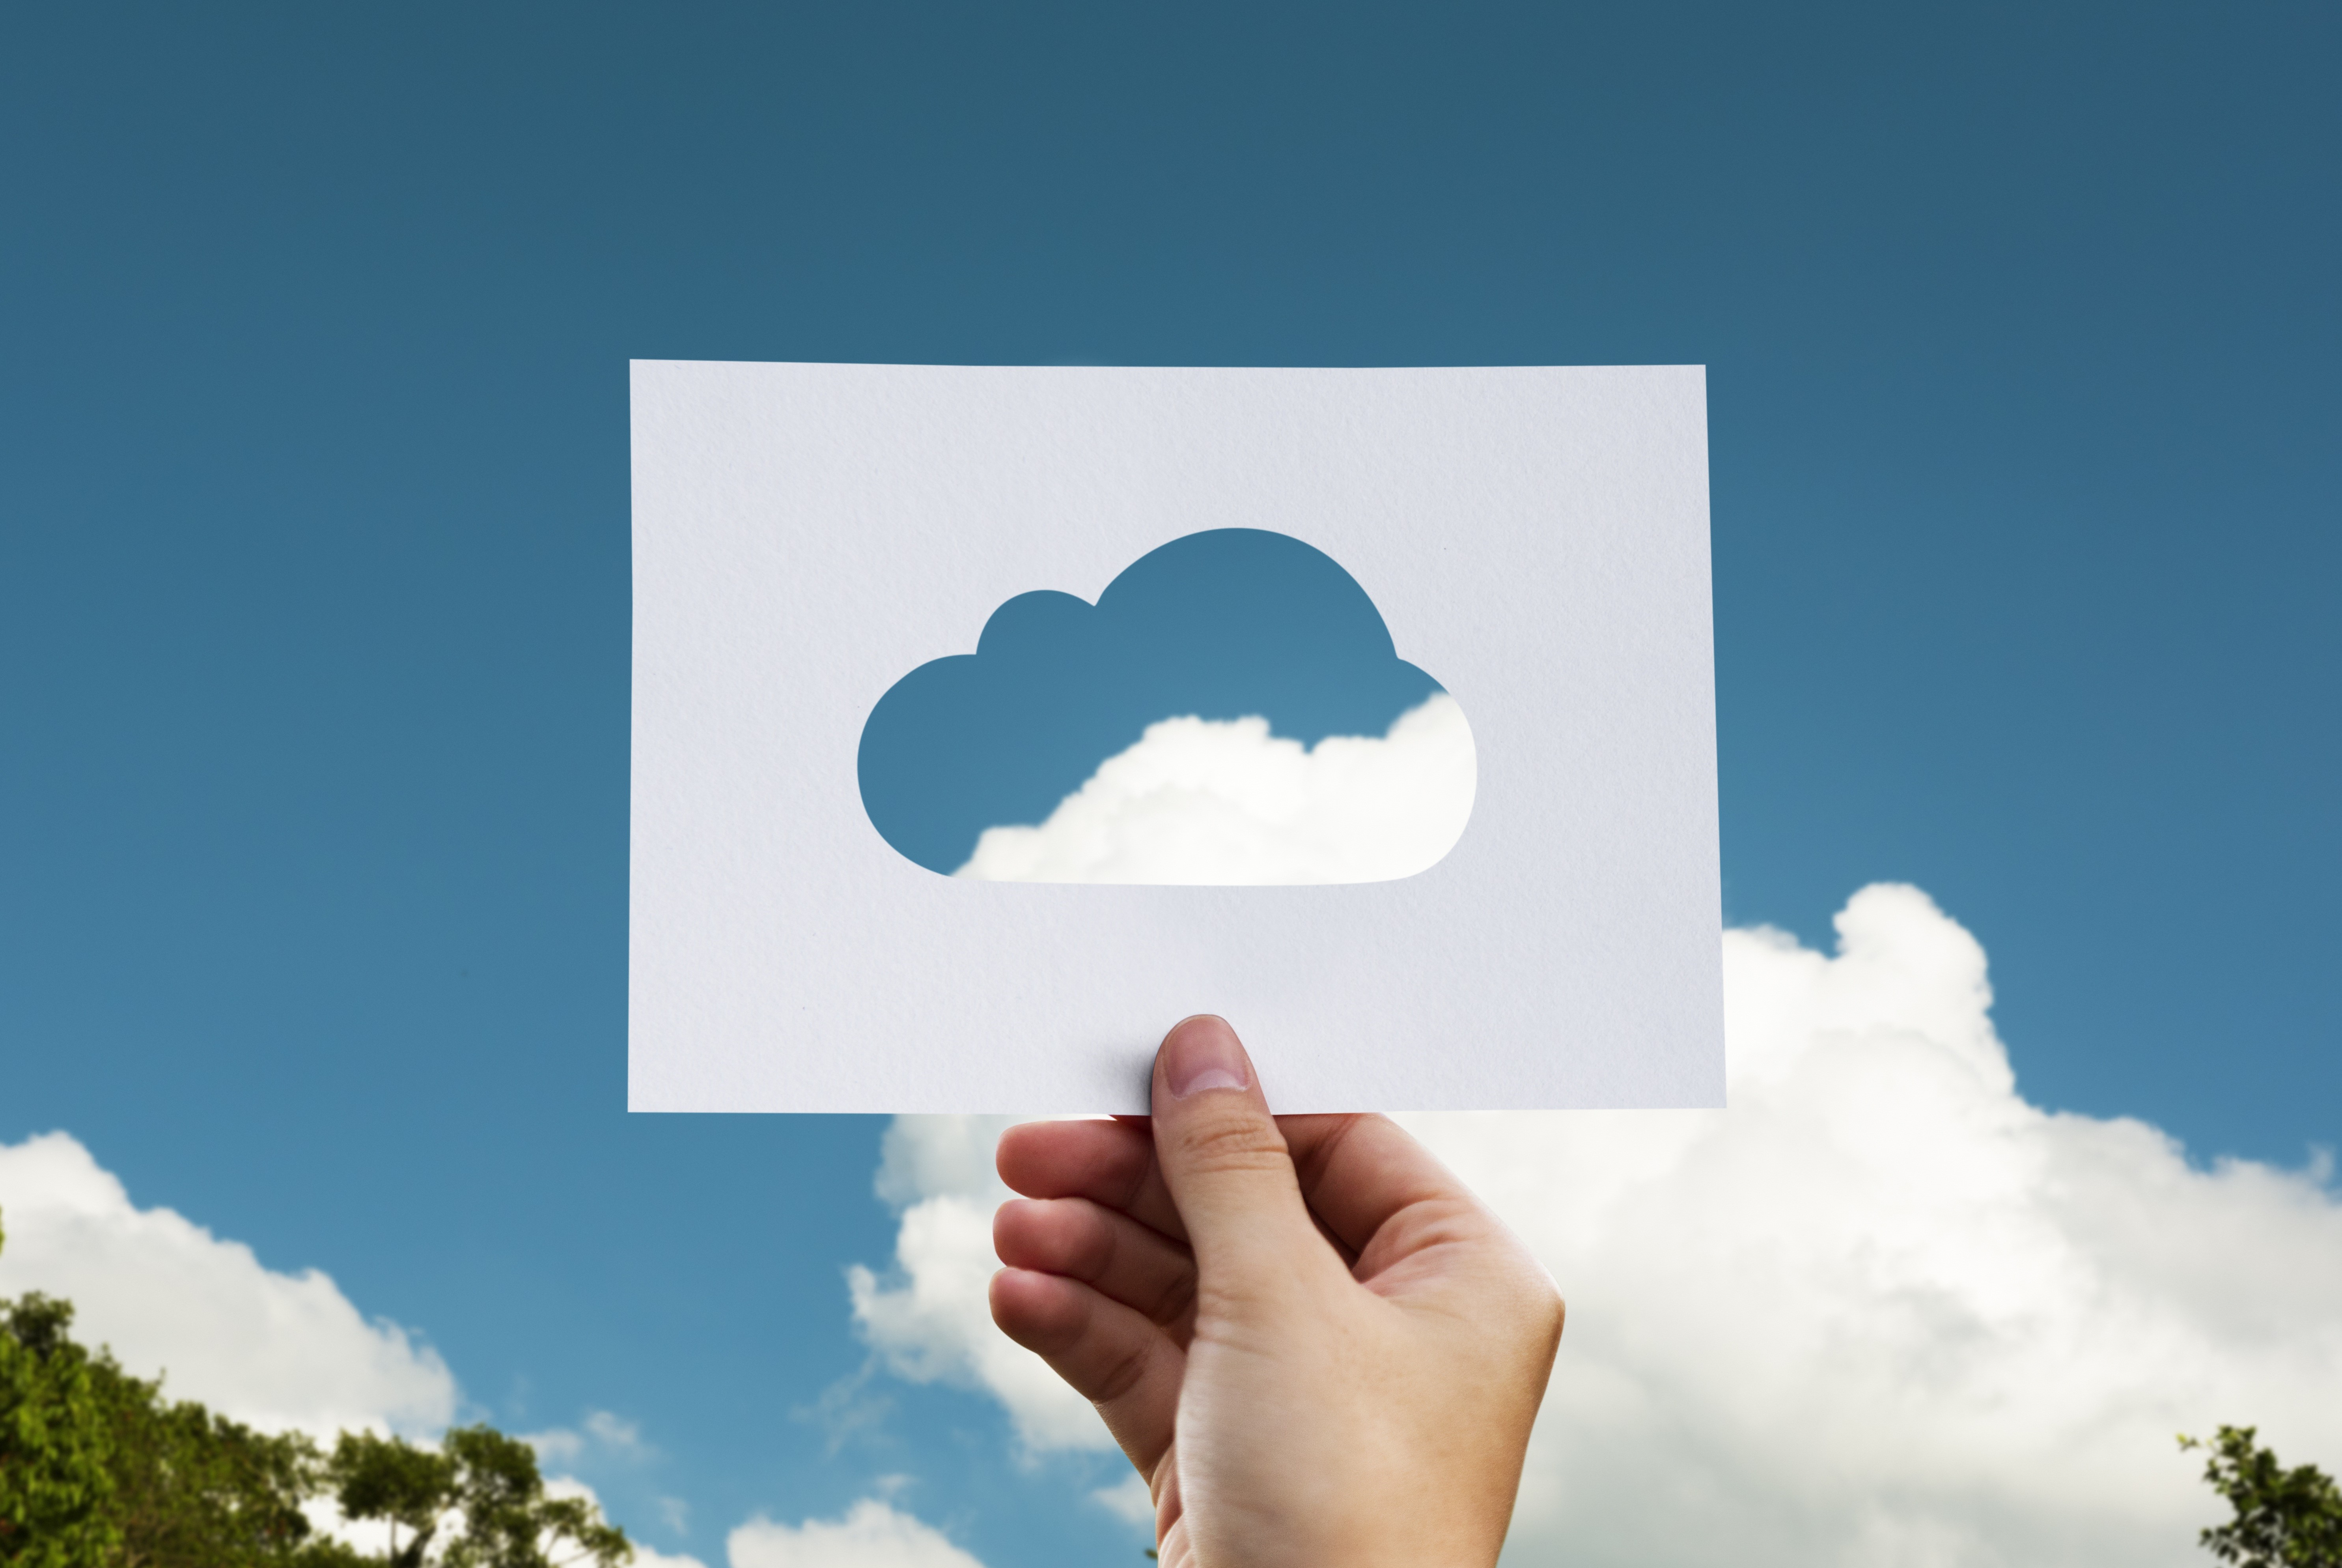 Are Cloud Claims Overblown? | Munro's Accountants and Advisors